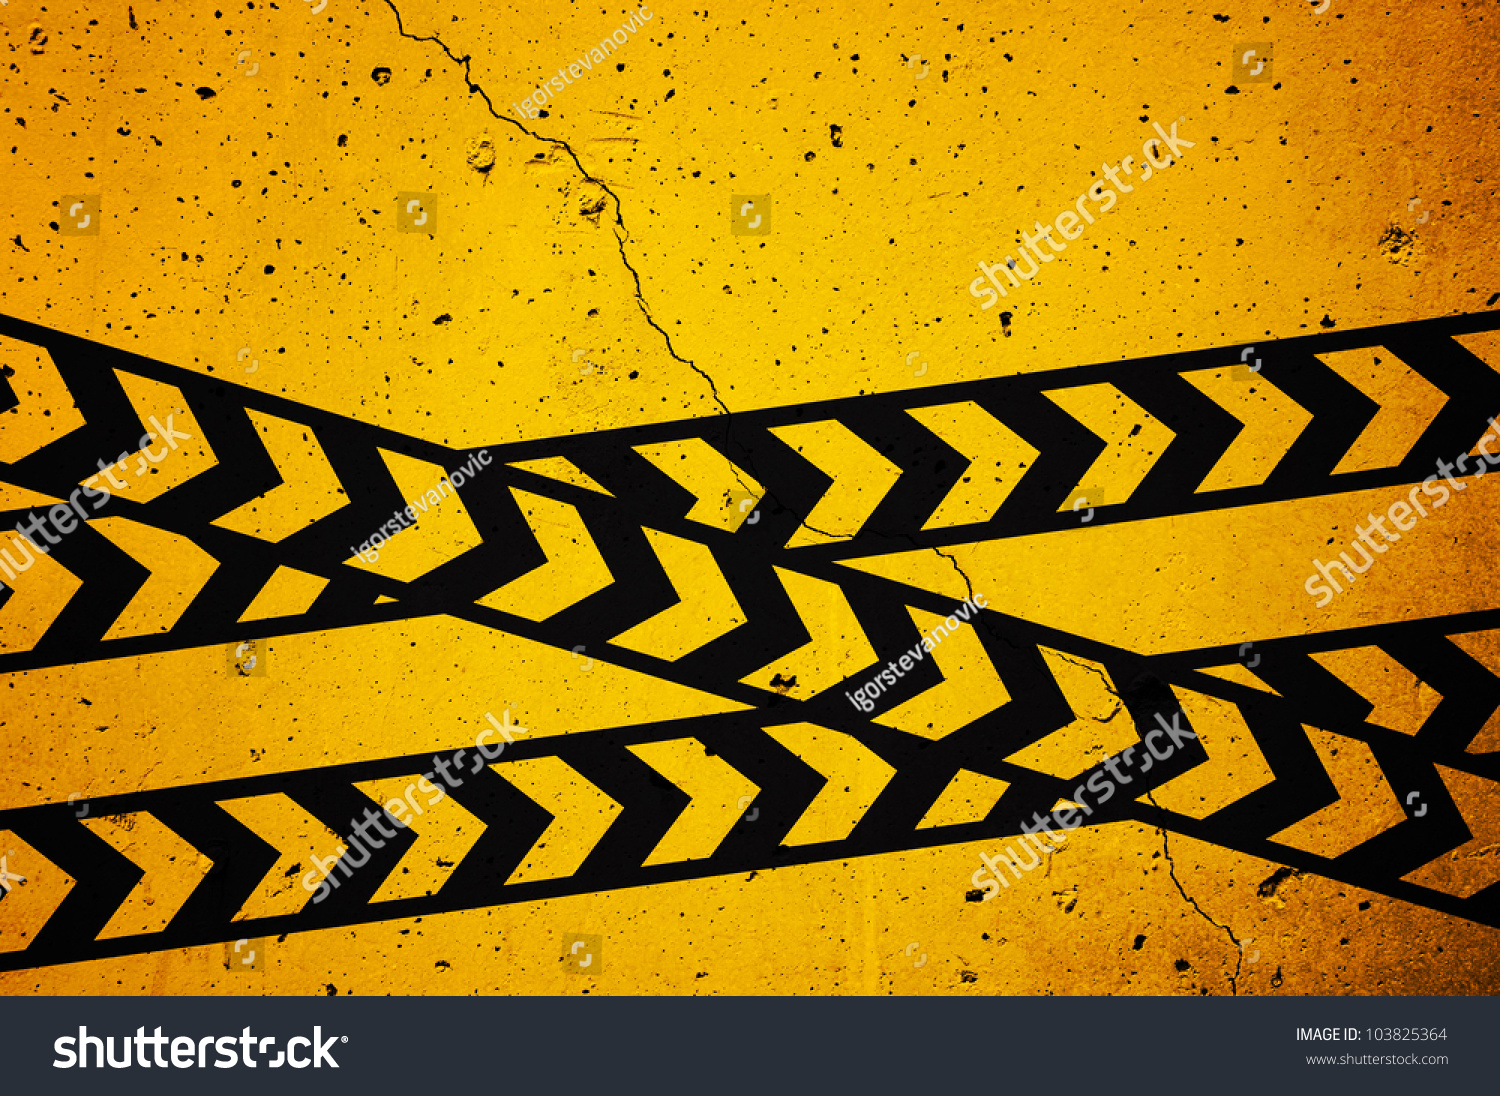 safety background pictures to pin on pinterest pinsdaddy christmas borders clip art border christmas borders clip art religious